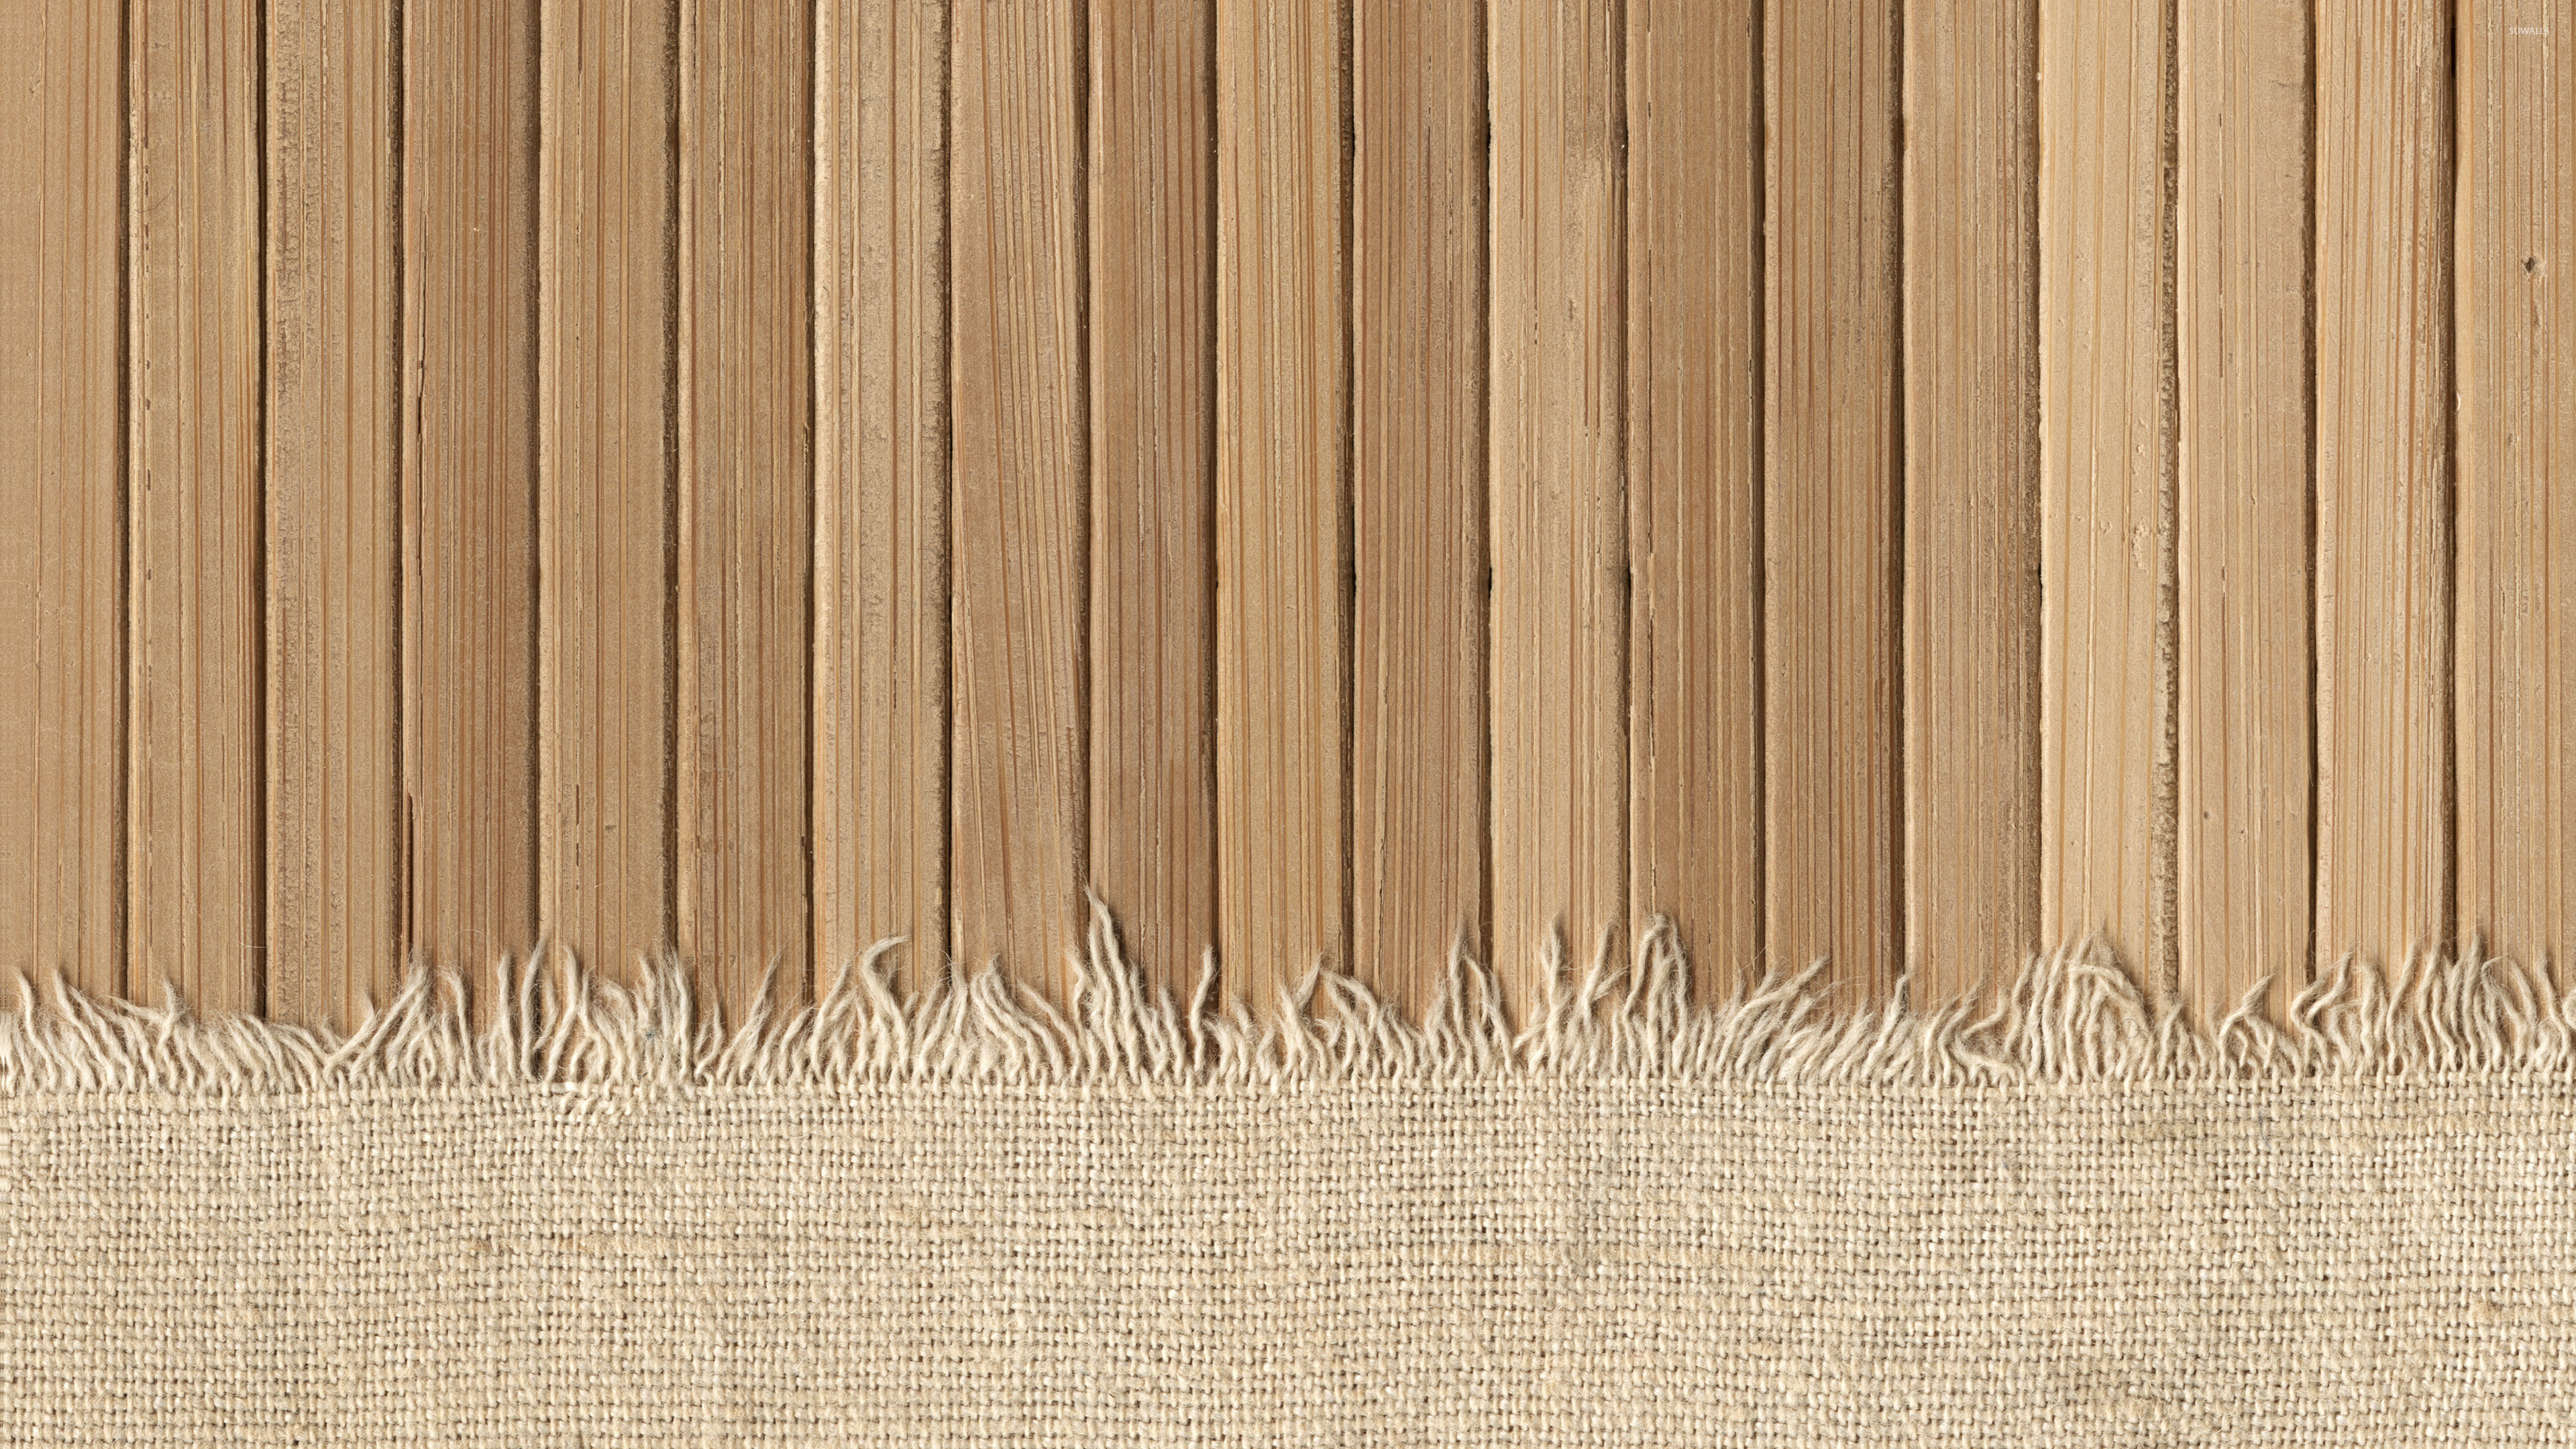 Covering Paneling With Fabric : Knit fabric covering the wooden panels wallpaper